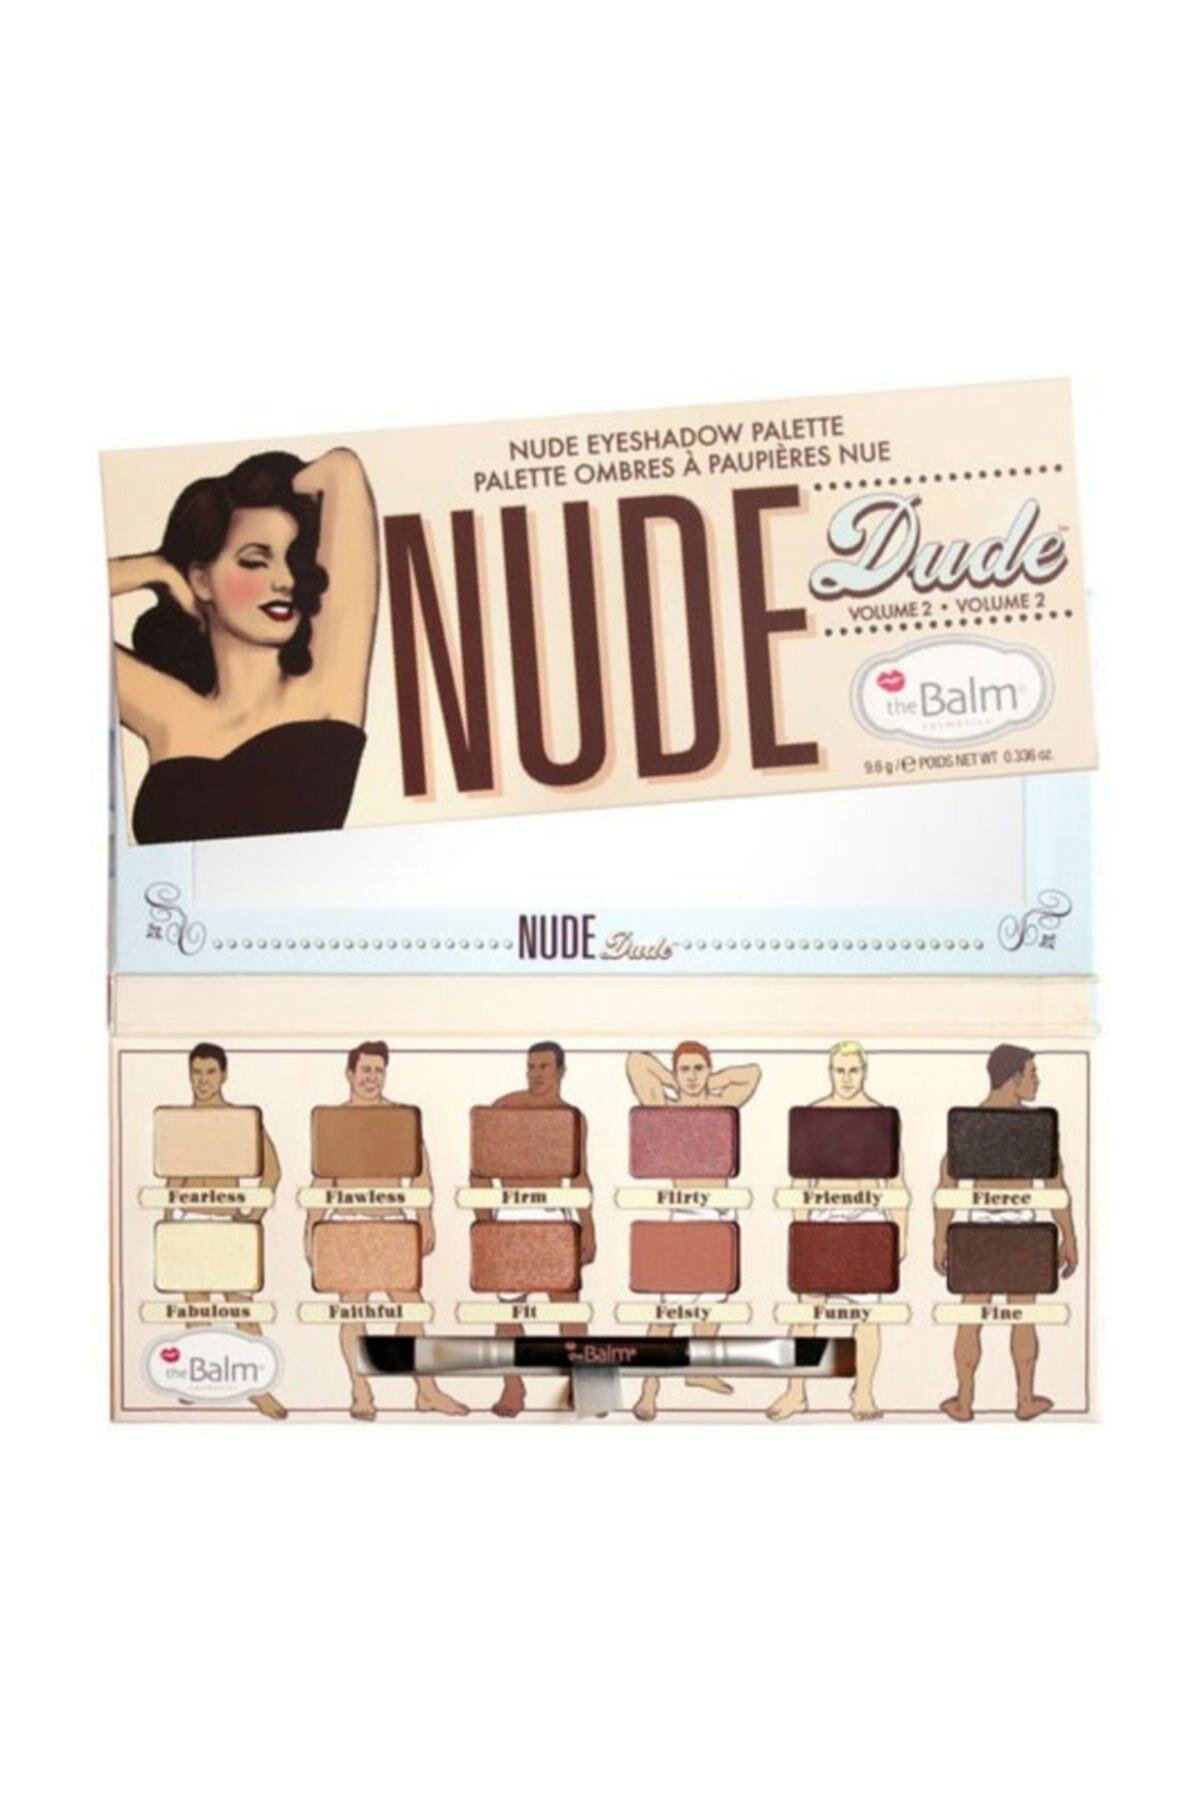 the balm Nude Eyeshadow Palette Far Paleti Dude 1